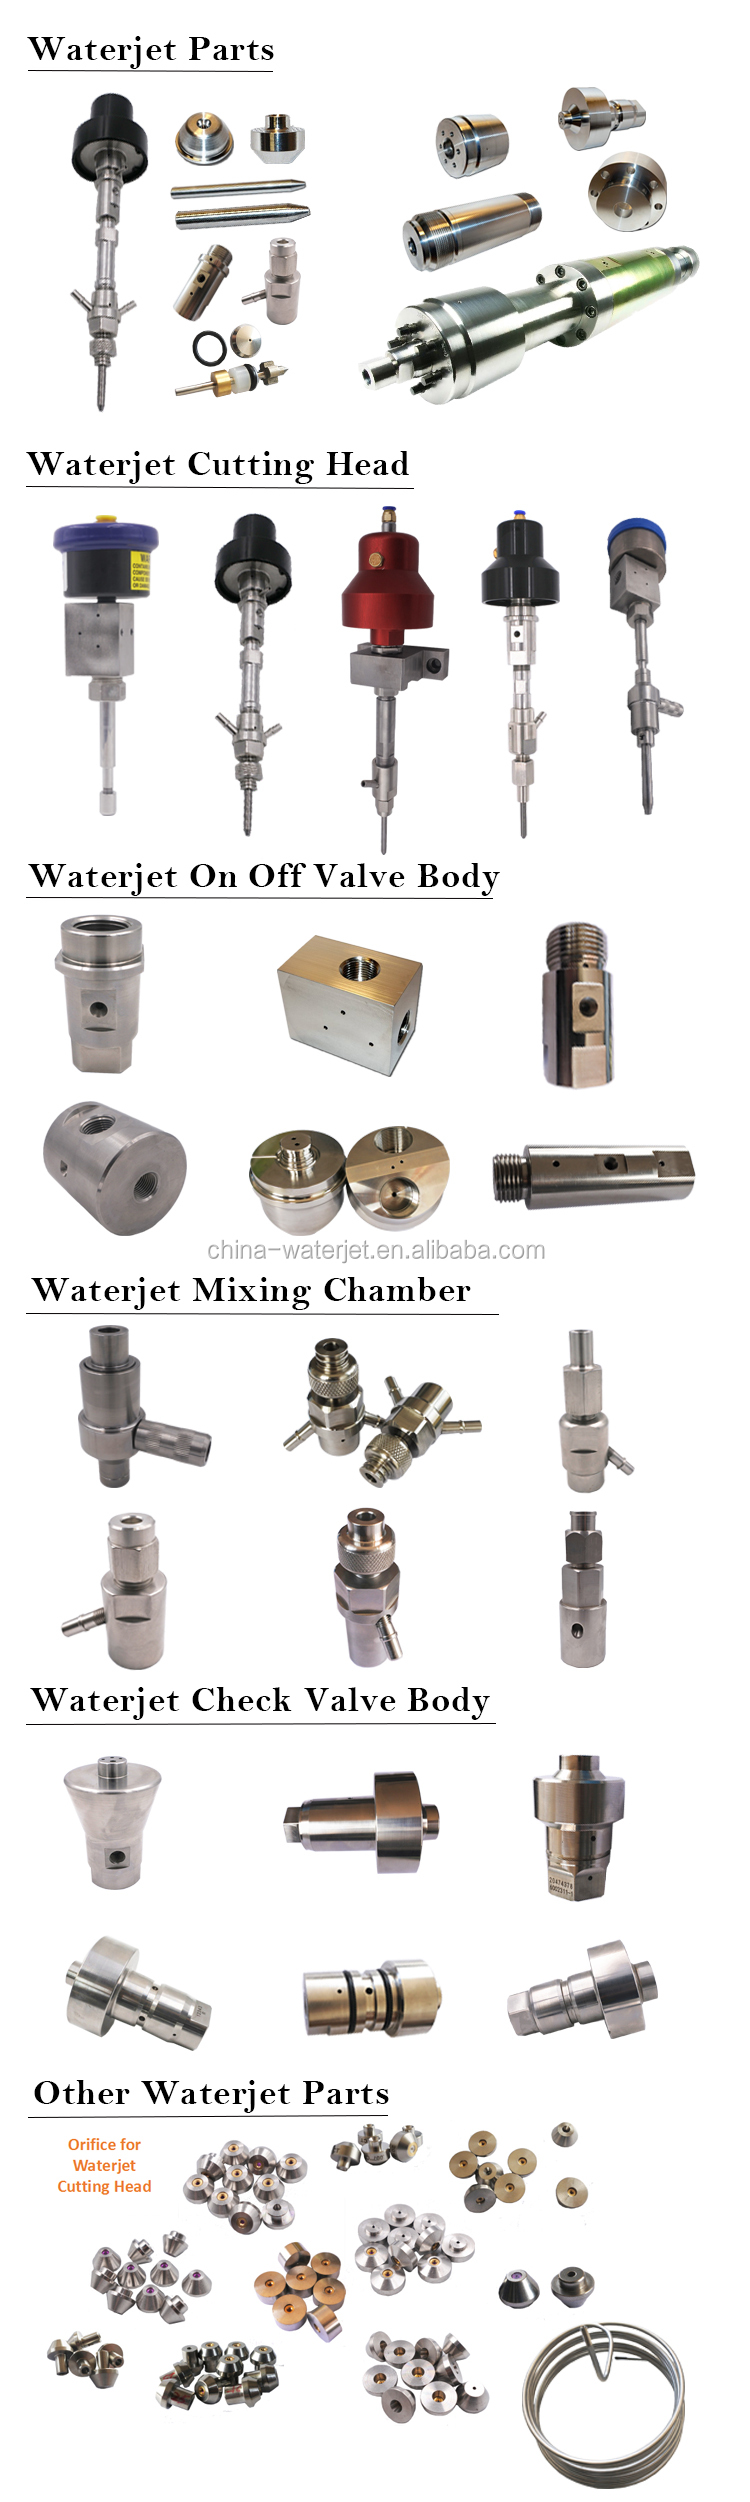 waterjet spare parts waterjet consumable water jet products